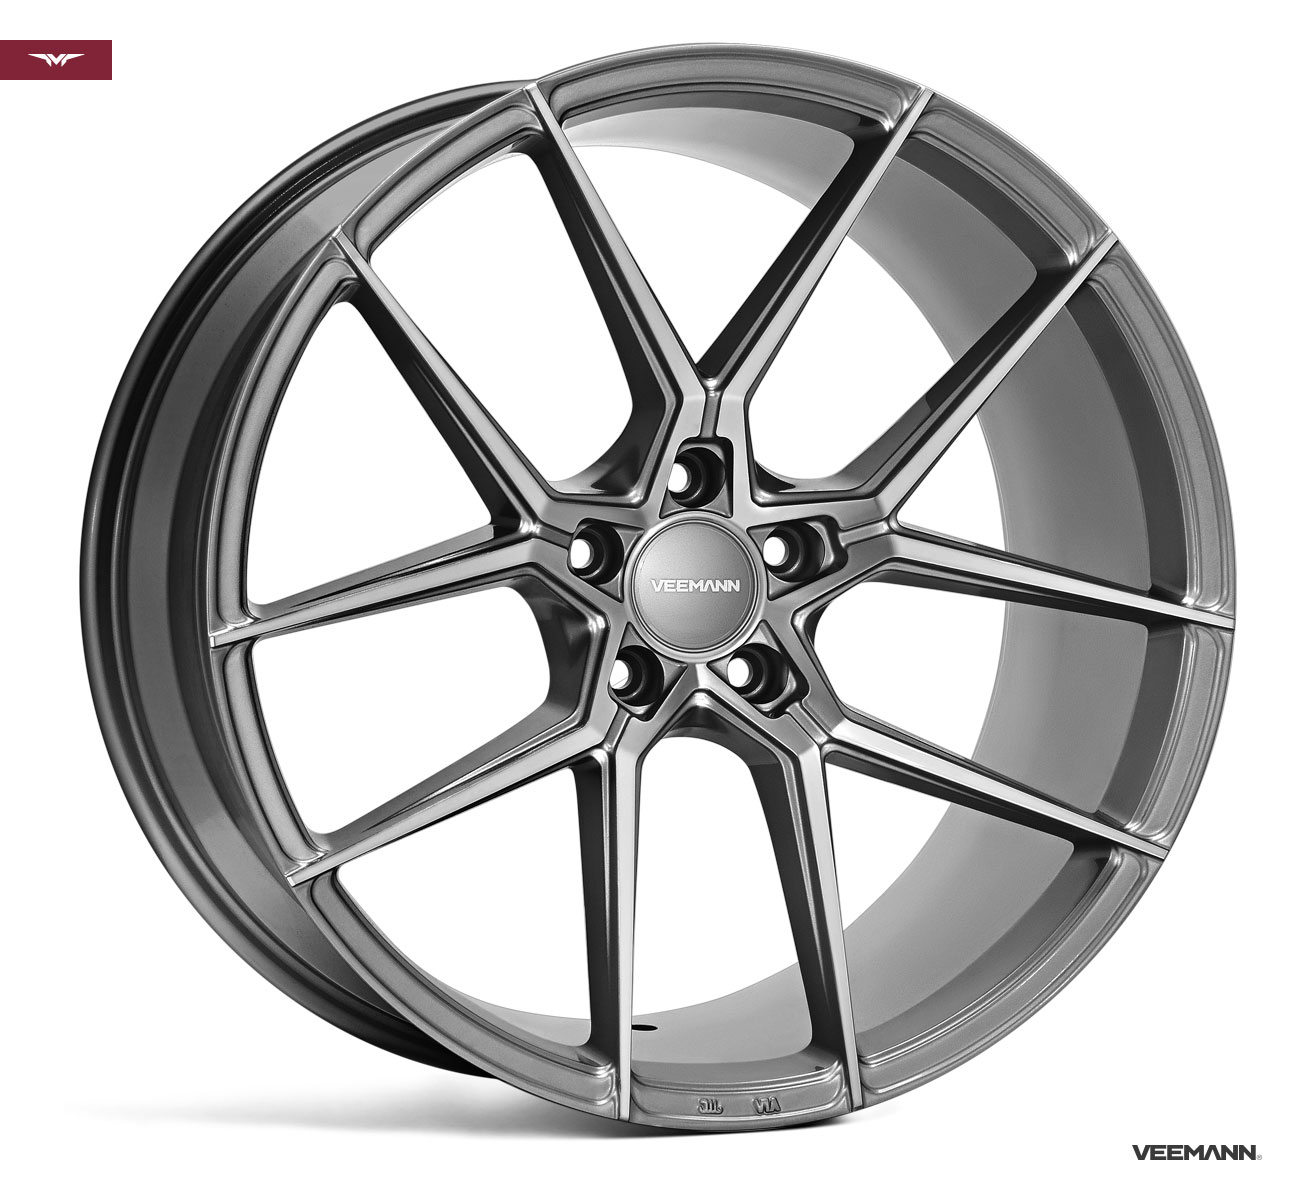 "NEW 19"" VEEMANN V-FS39 ALLOY WHEELS IN GLOSS GRAPHITE WIDER 9.5"" REAR"